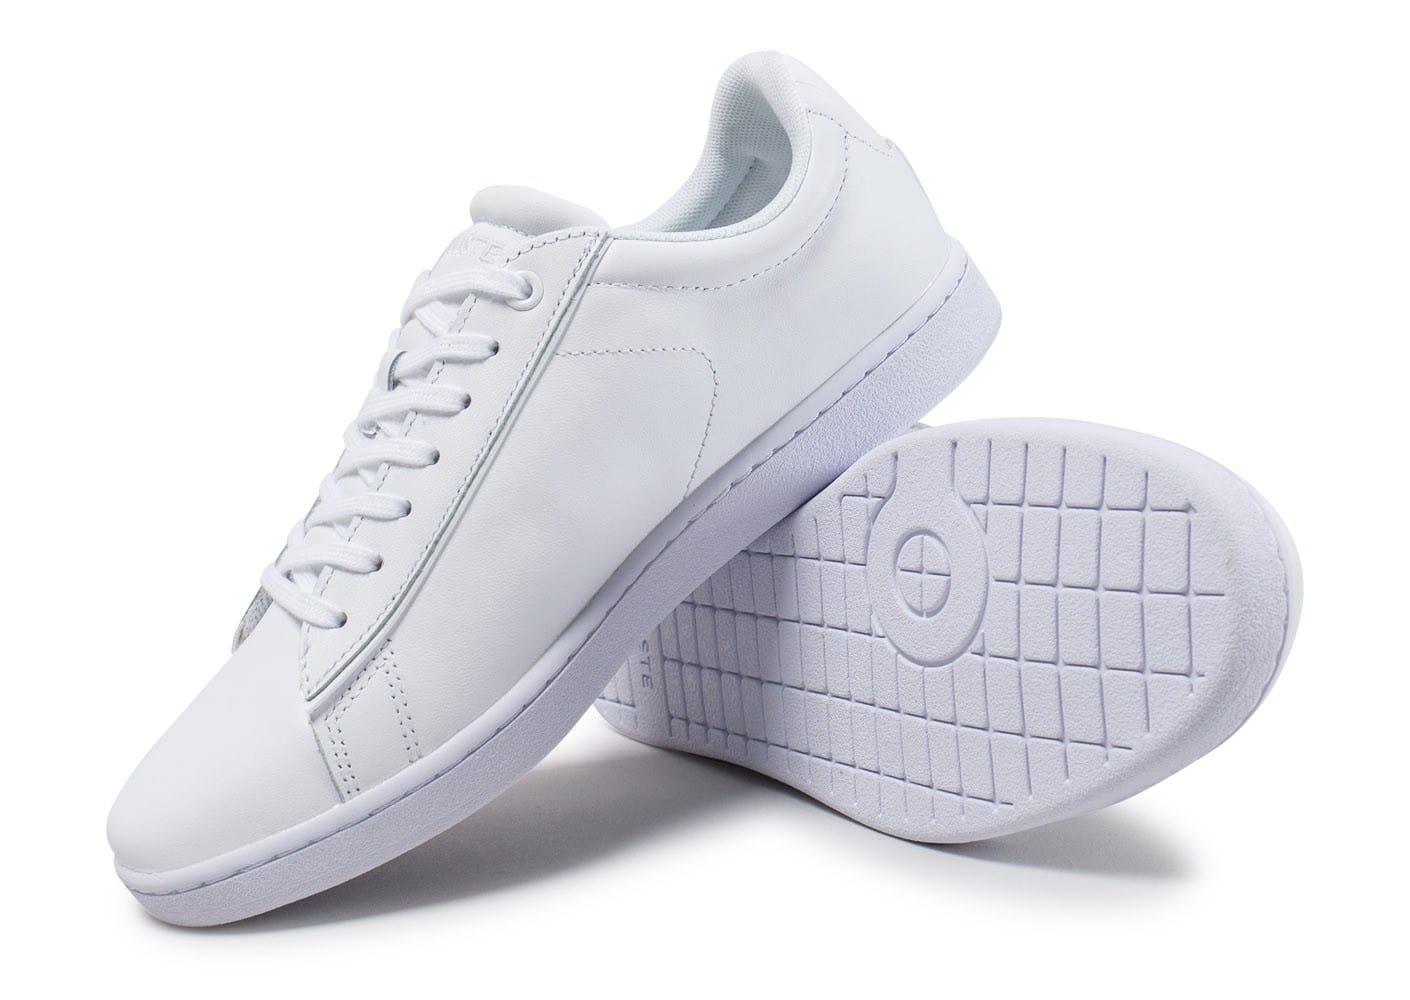 Lacoste carnaby evo 417 spw blanche chaussures femme - Lacoste carnaby evo cls baskets en cuir perfore ...